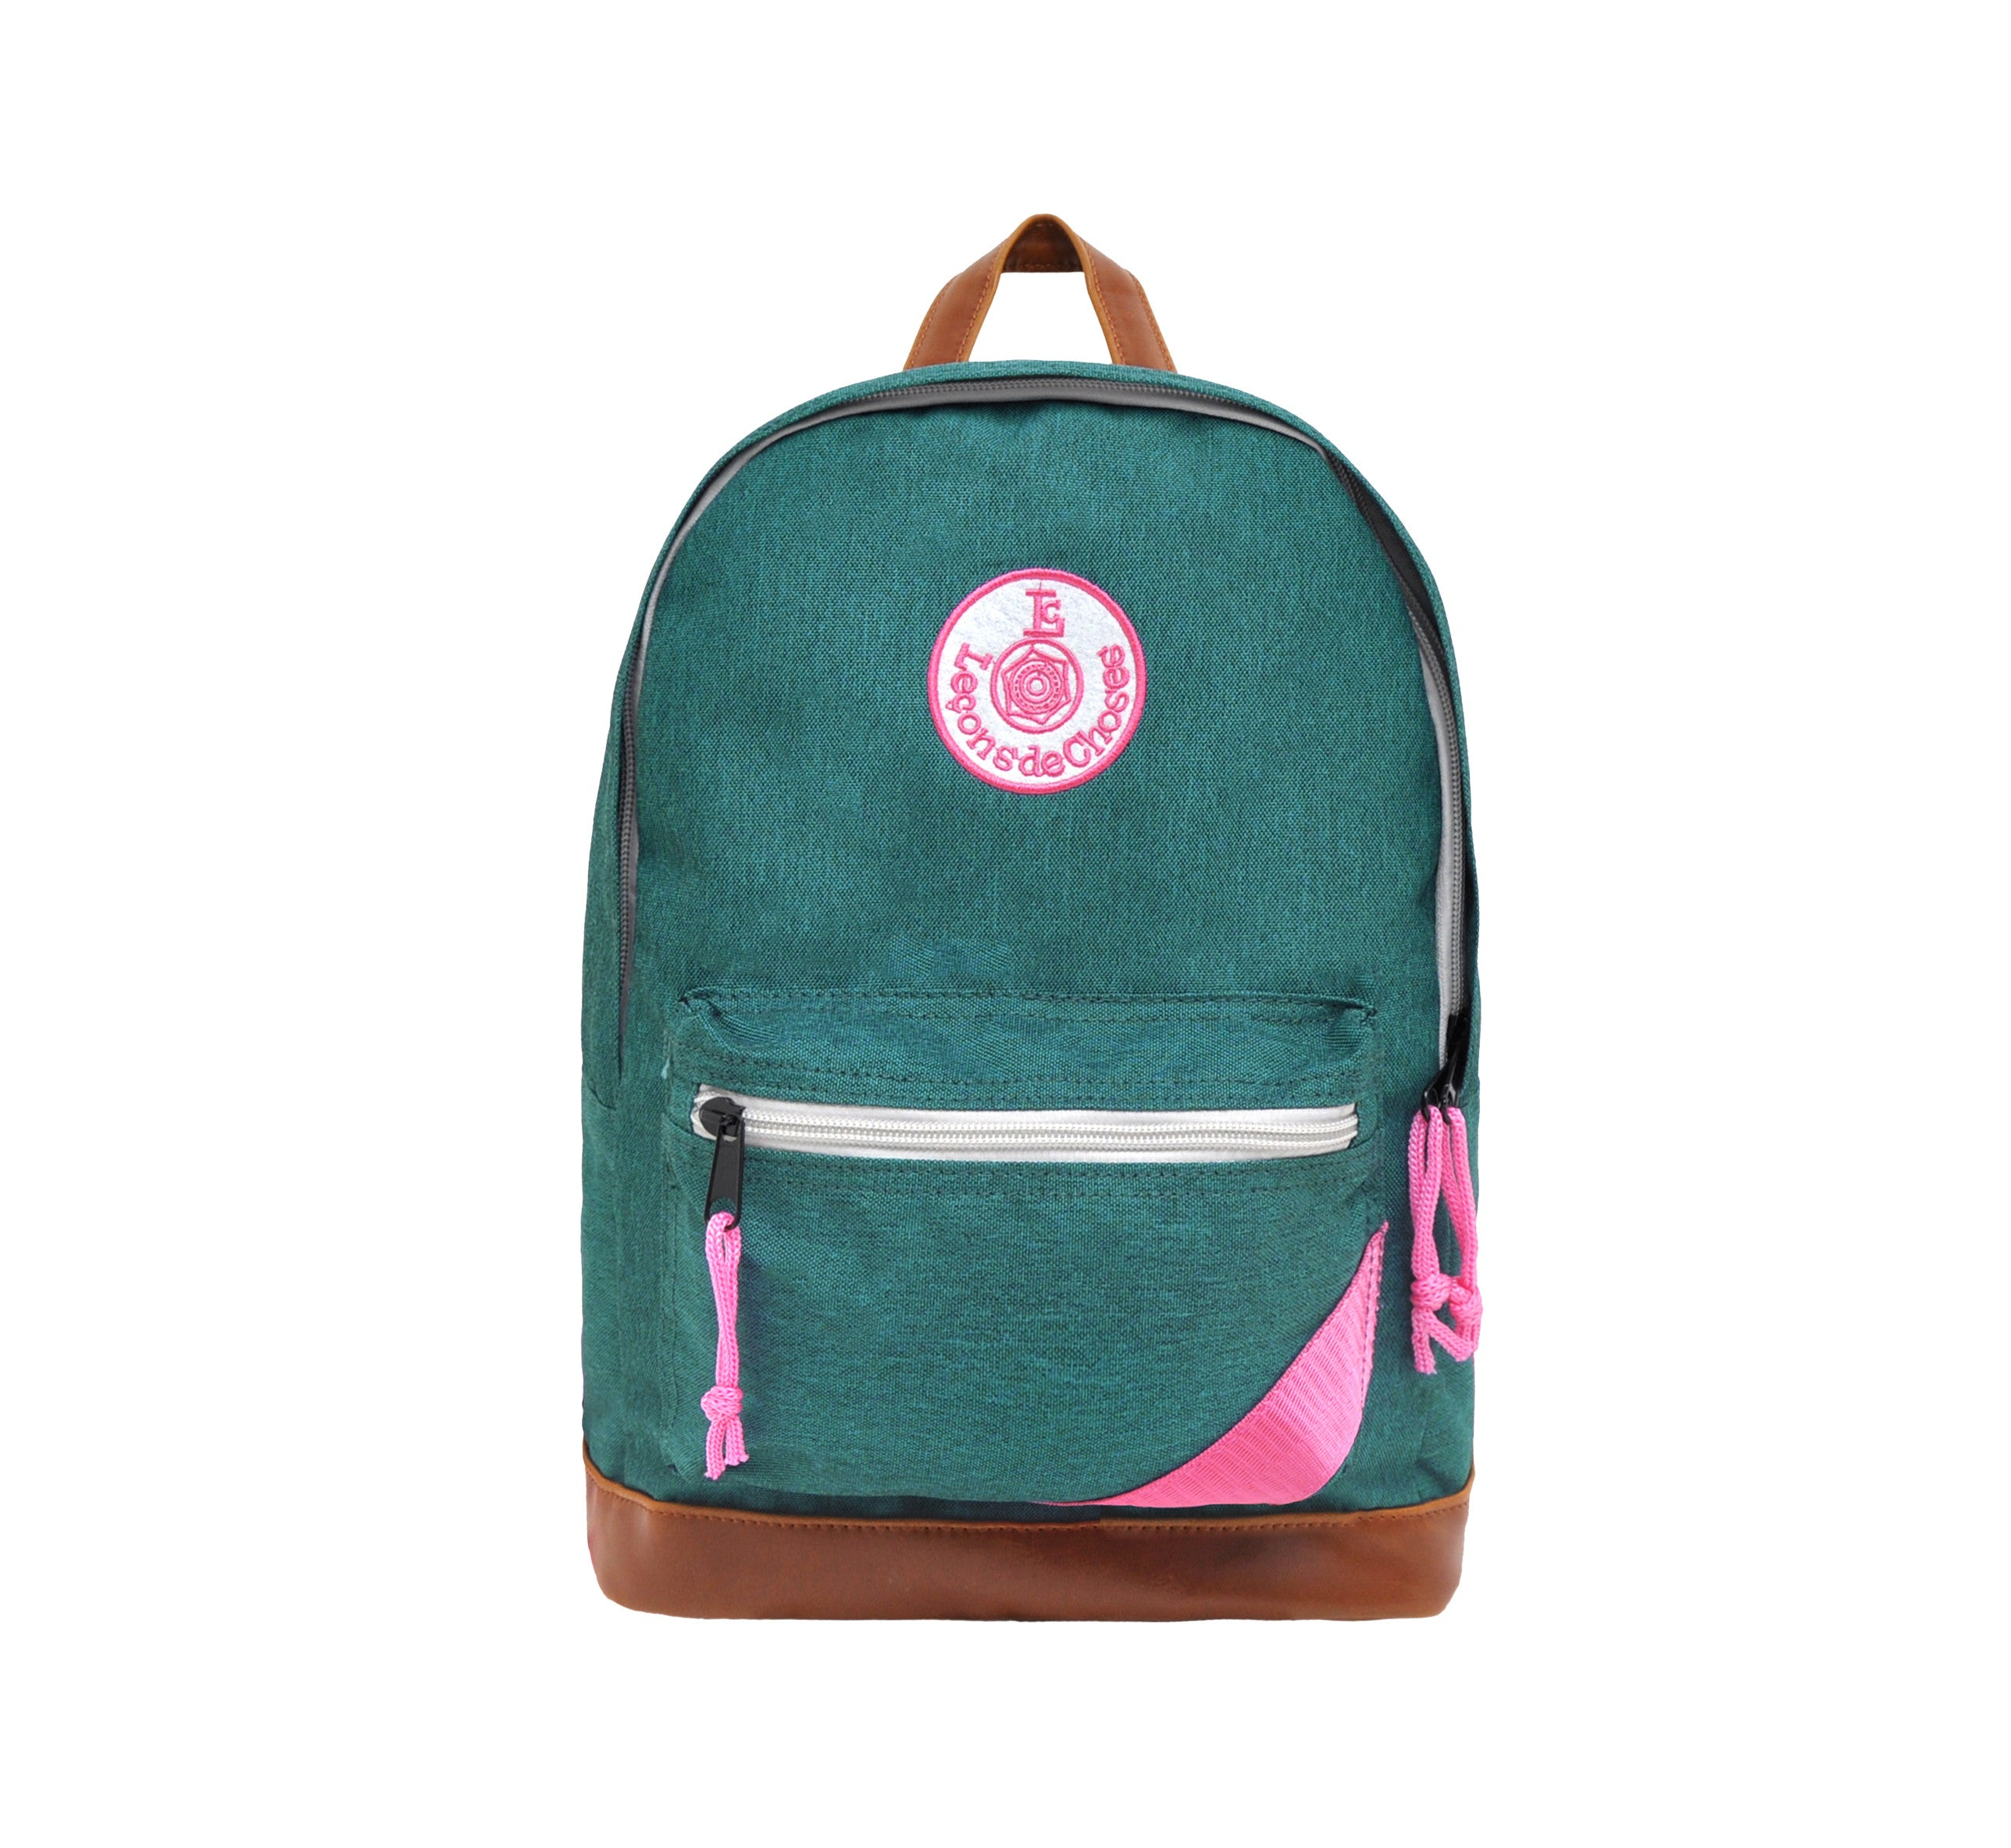 Retro backpack - green and pink strip